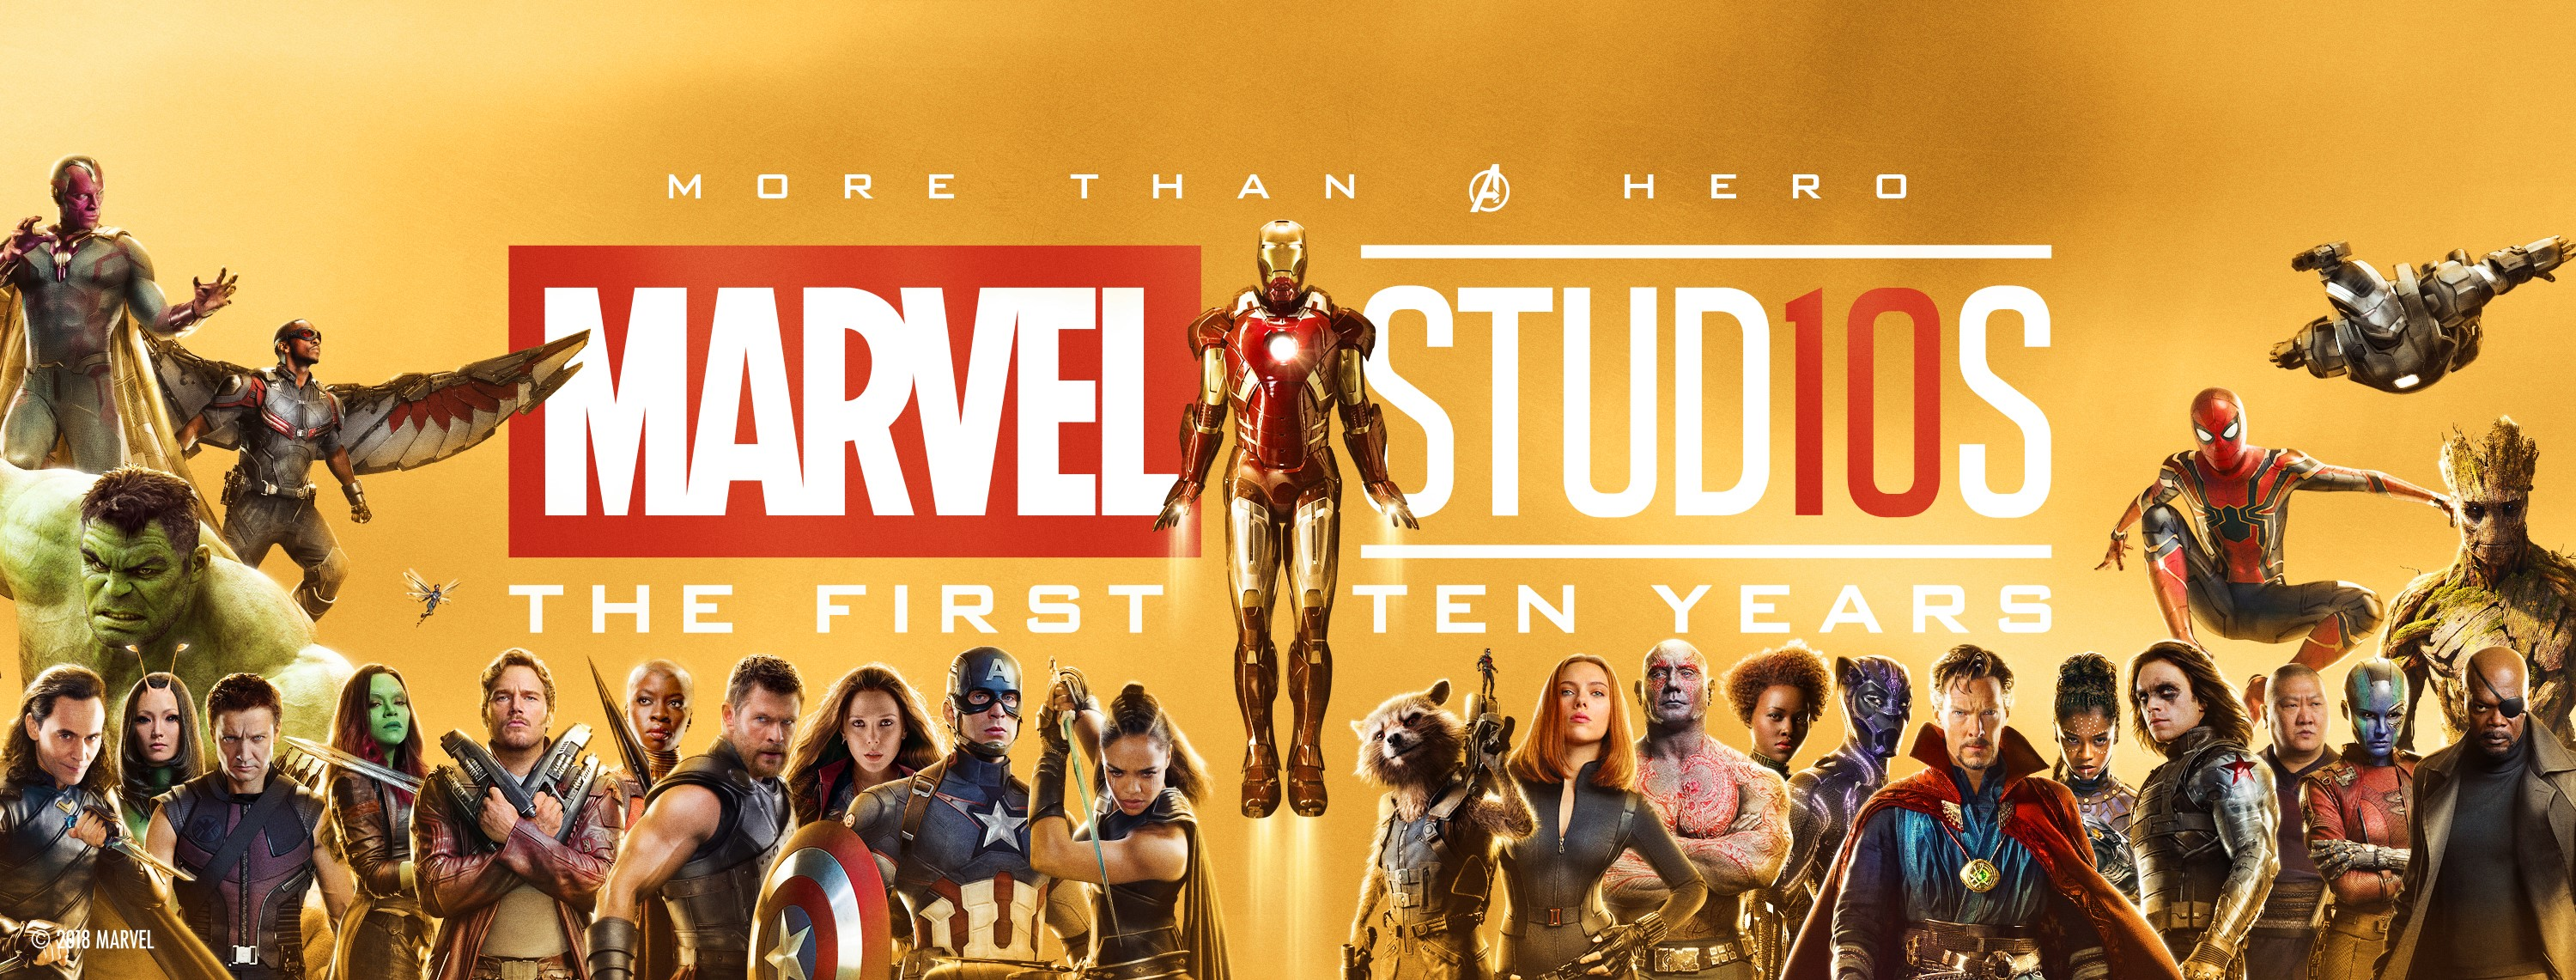 Marvel Studios 10th Anniversary Banner Arrives In Times